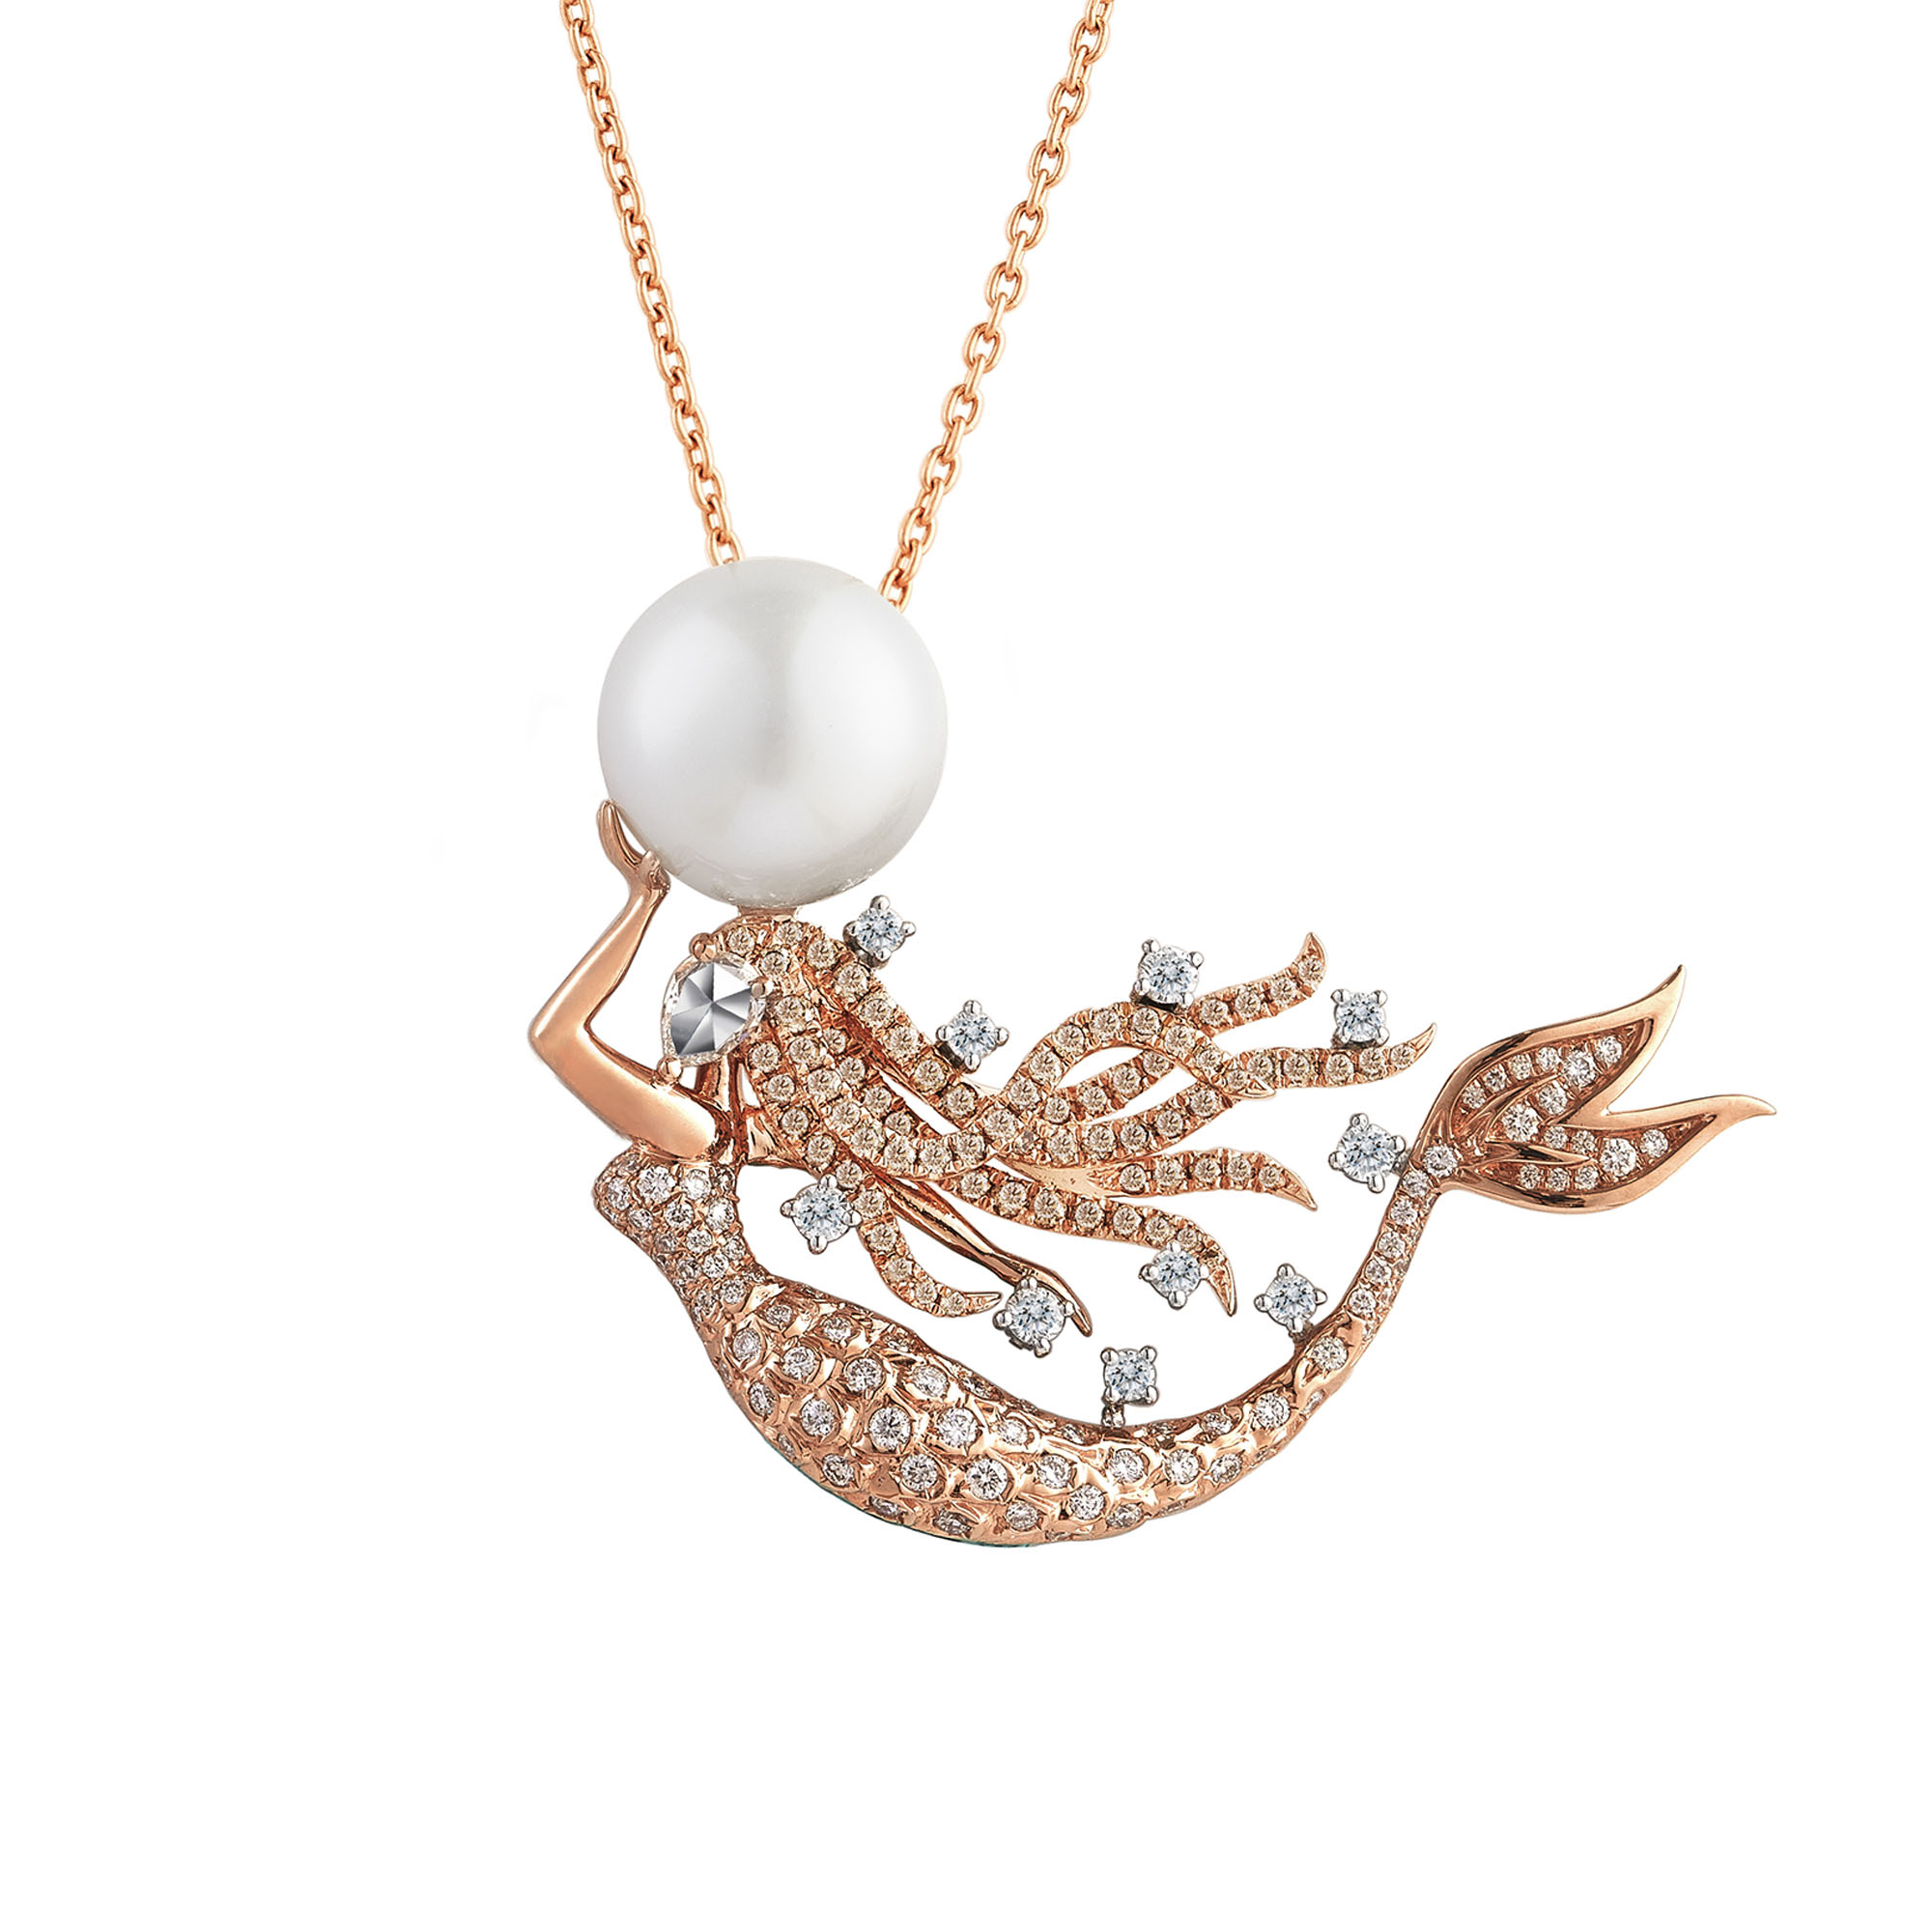 The Blushing Mermaid Necklace